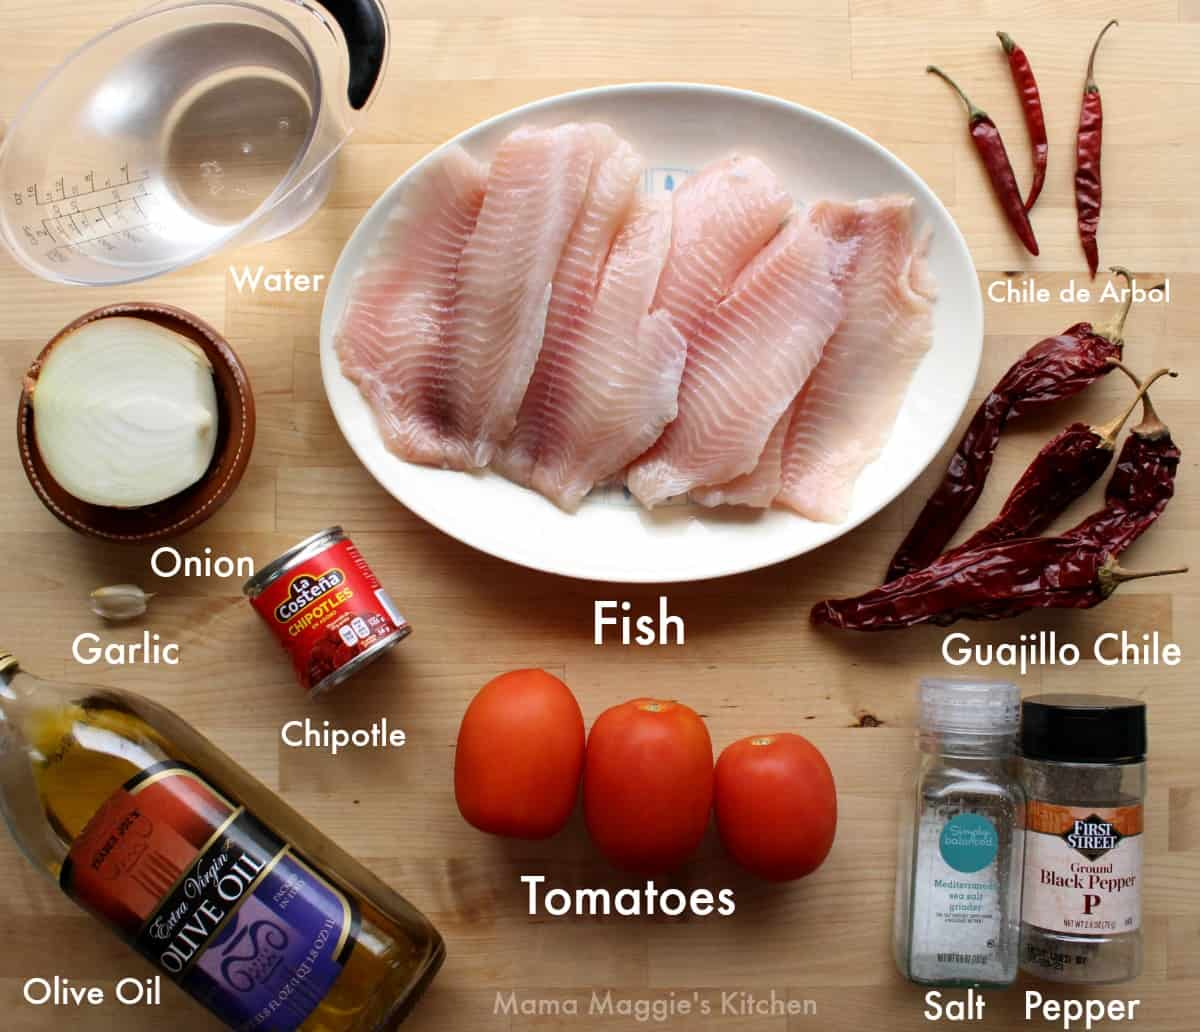 The ingredients to make Pescado a la Diabla labeled and on a wooden surface.